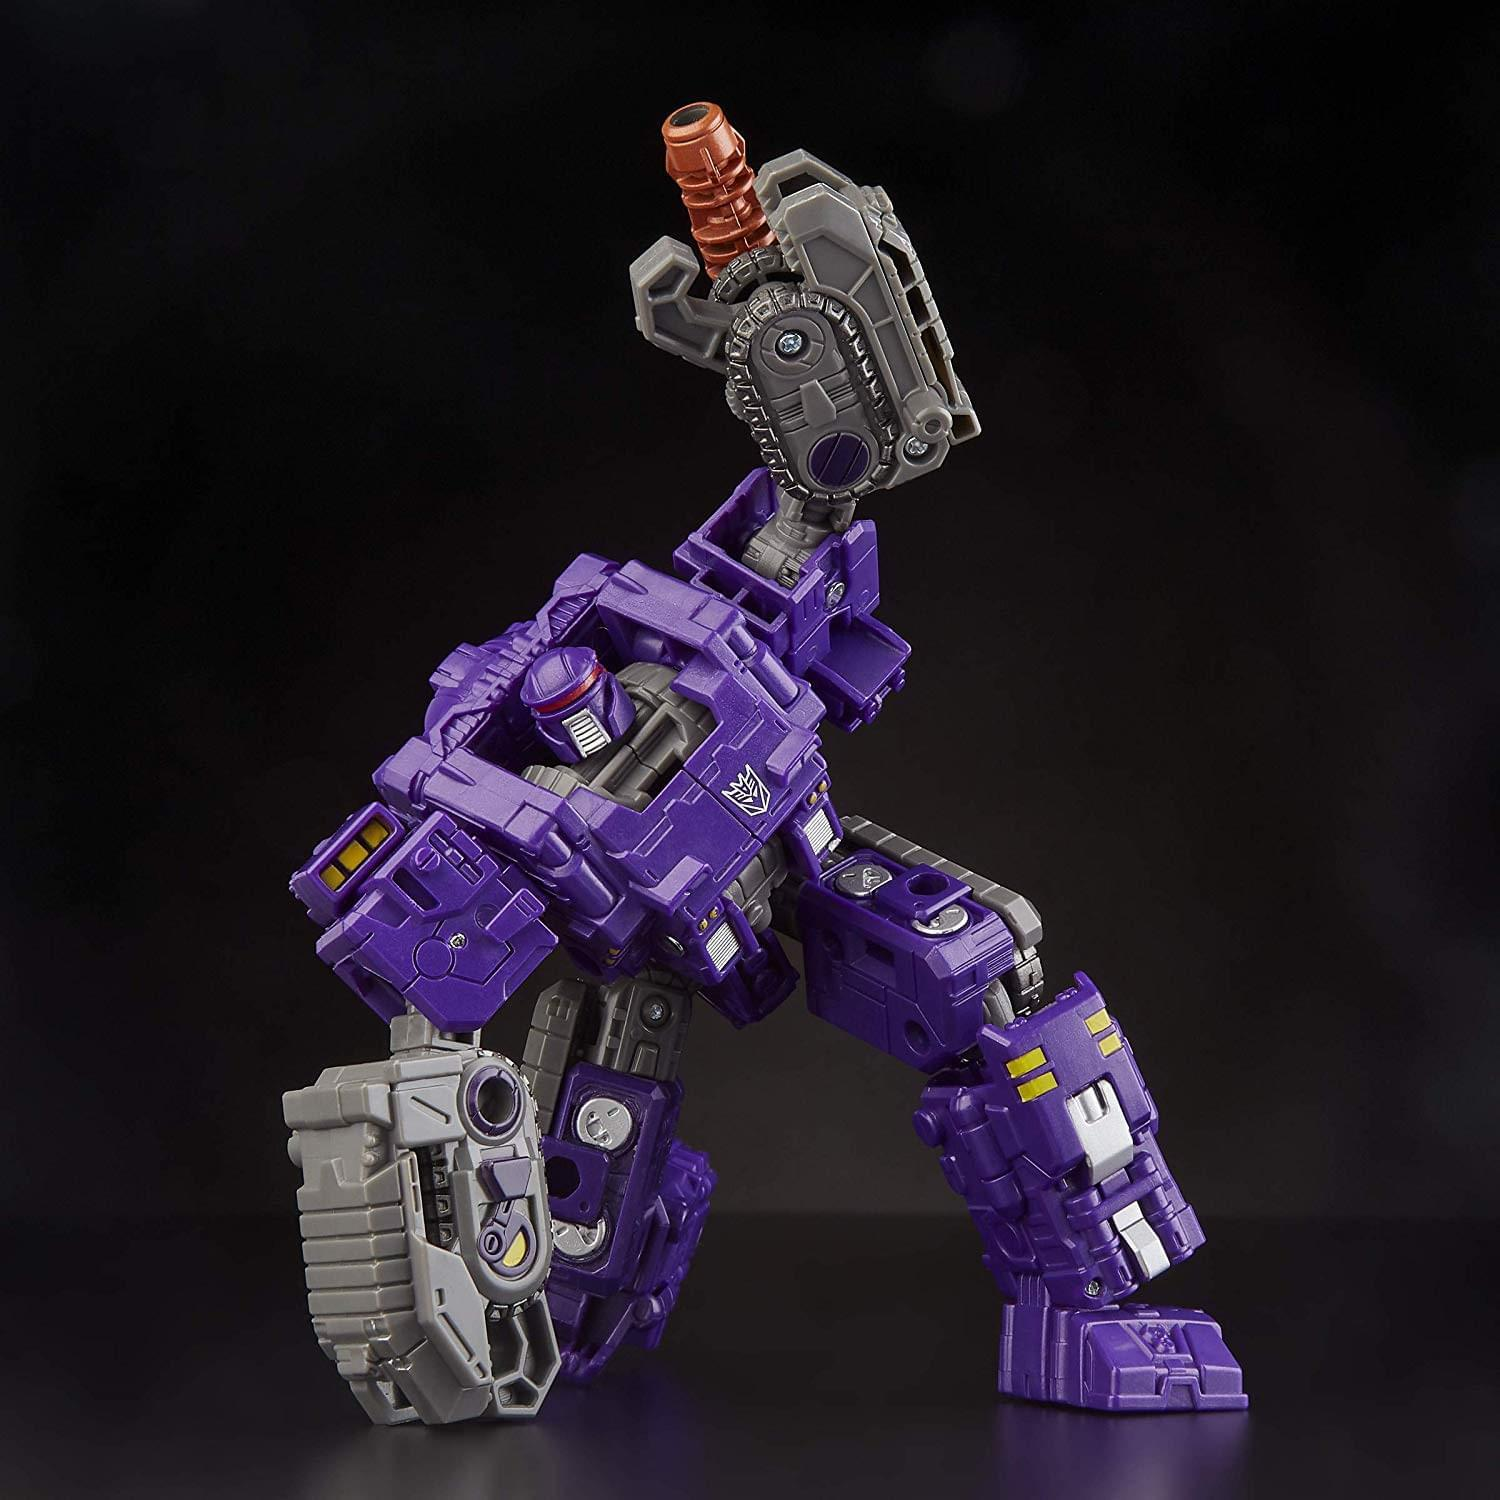 Transformers Siege War For Cybertron Trilogy- Brunt - Hasbro E3432